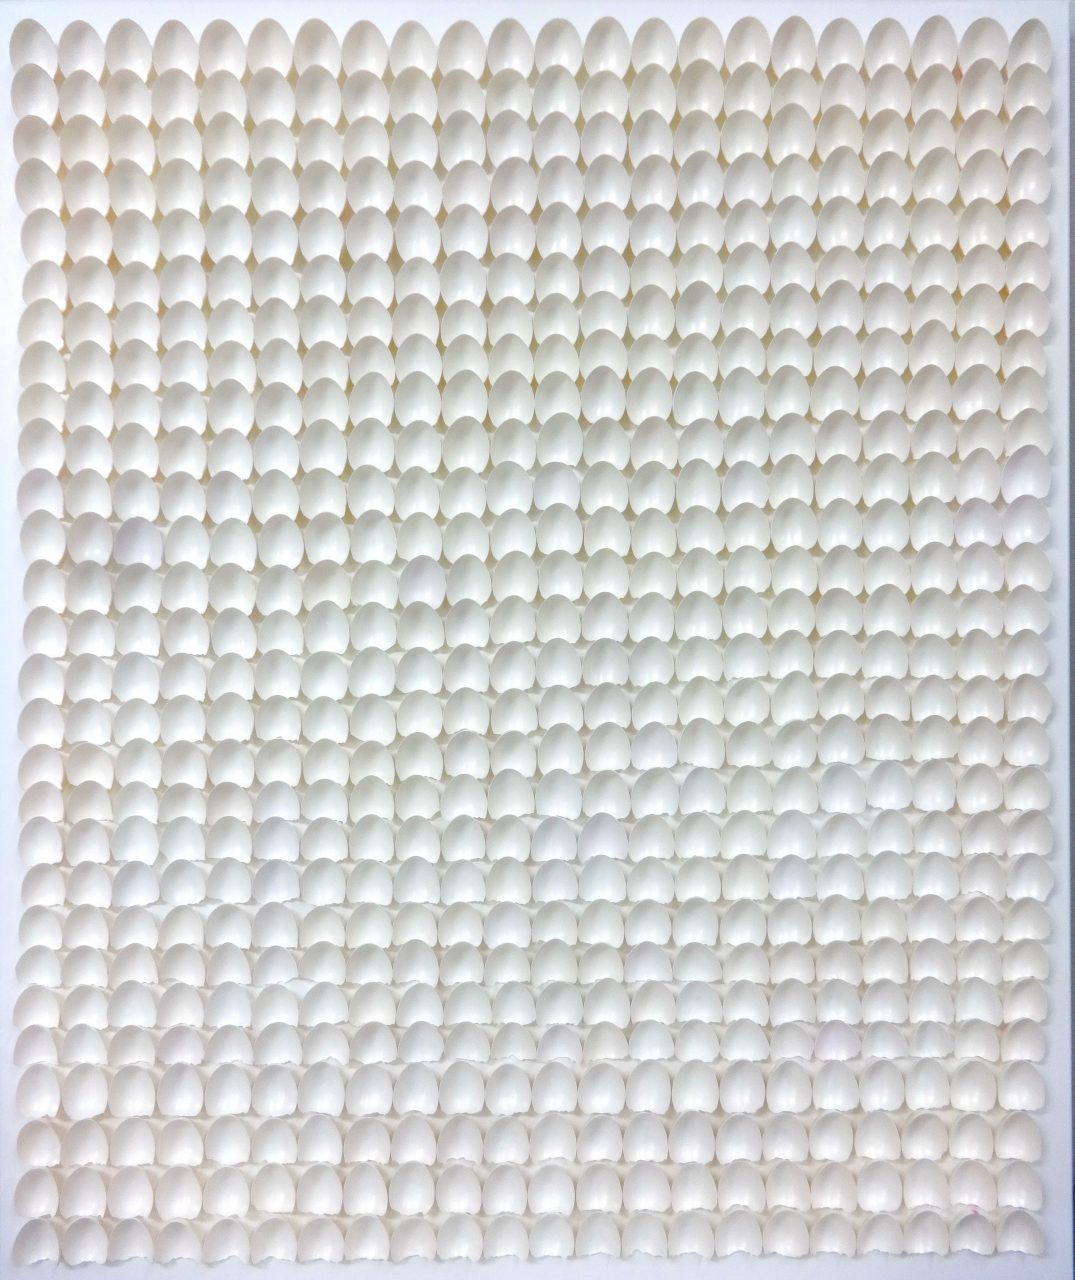 NANO 616, 2016 , invisible color on eggshells on canvas, 120x100x7 cm/ Private collection, Belgium